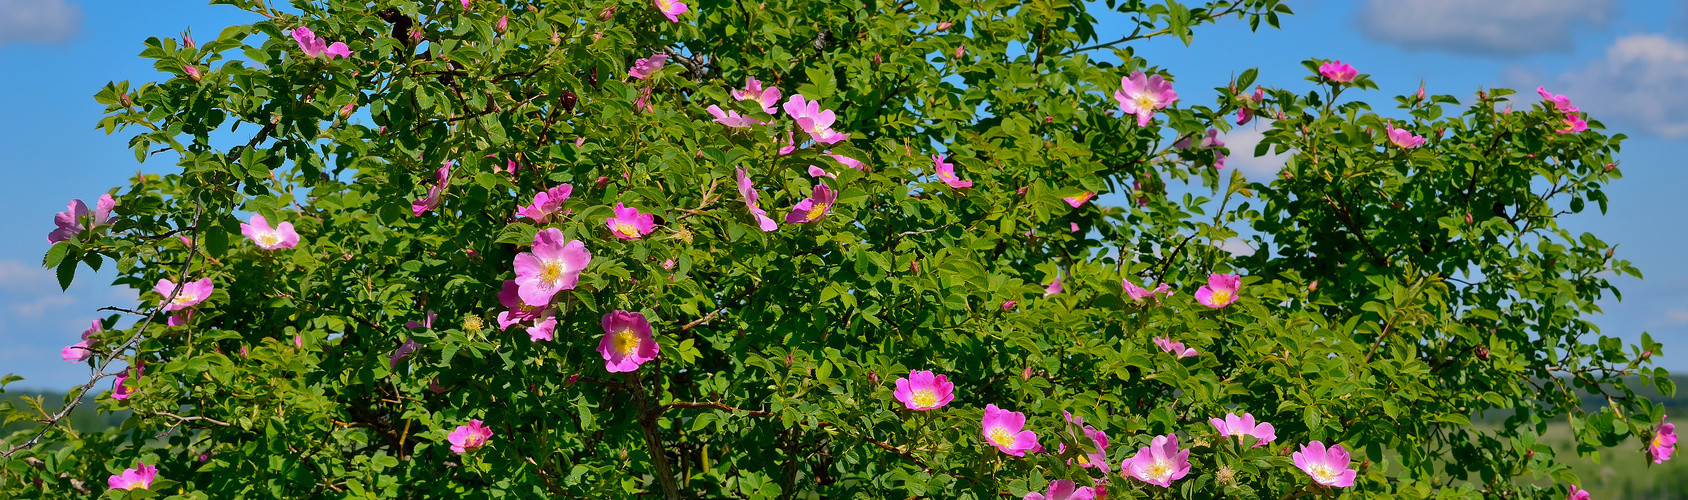 Dog Rose Tree with pink flower in bloom